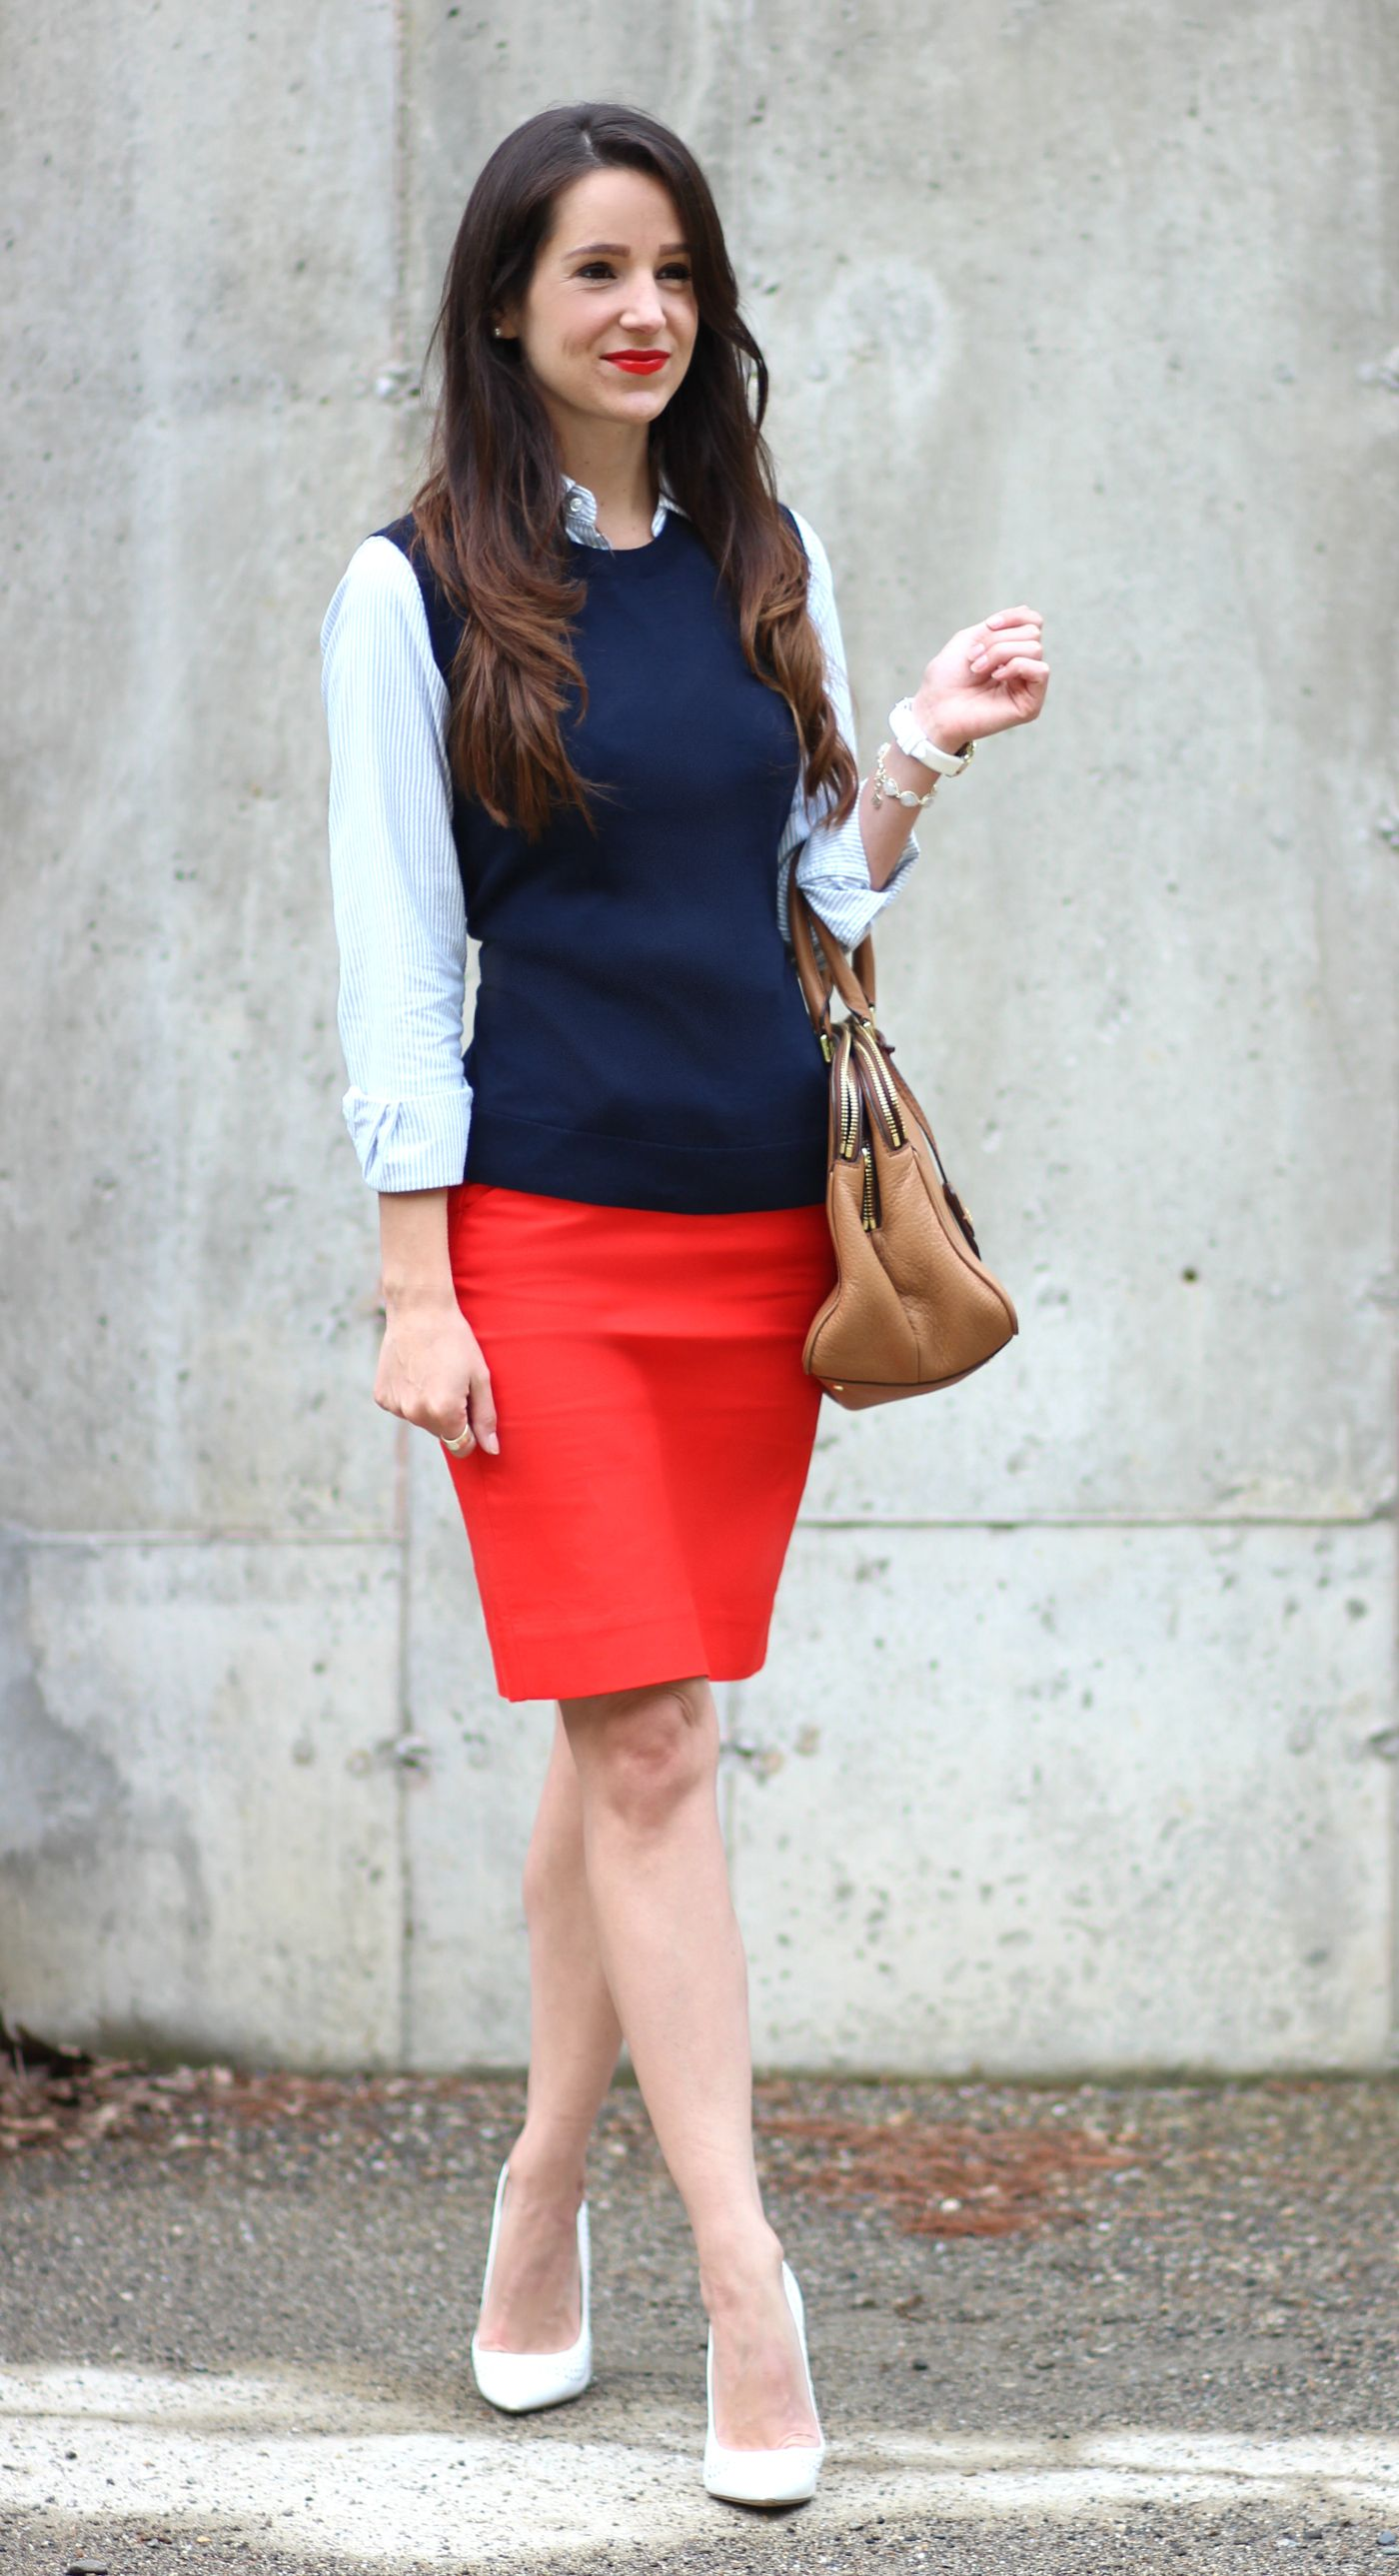 c1797356807a Love this preppy look! Navy sweater vest with classic Ralph Lauren oxford shirt  and a red pencil skirt. A fabulous work outfit idea for anyone looking for  a ...